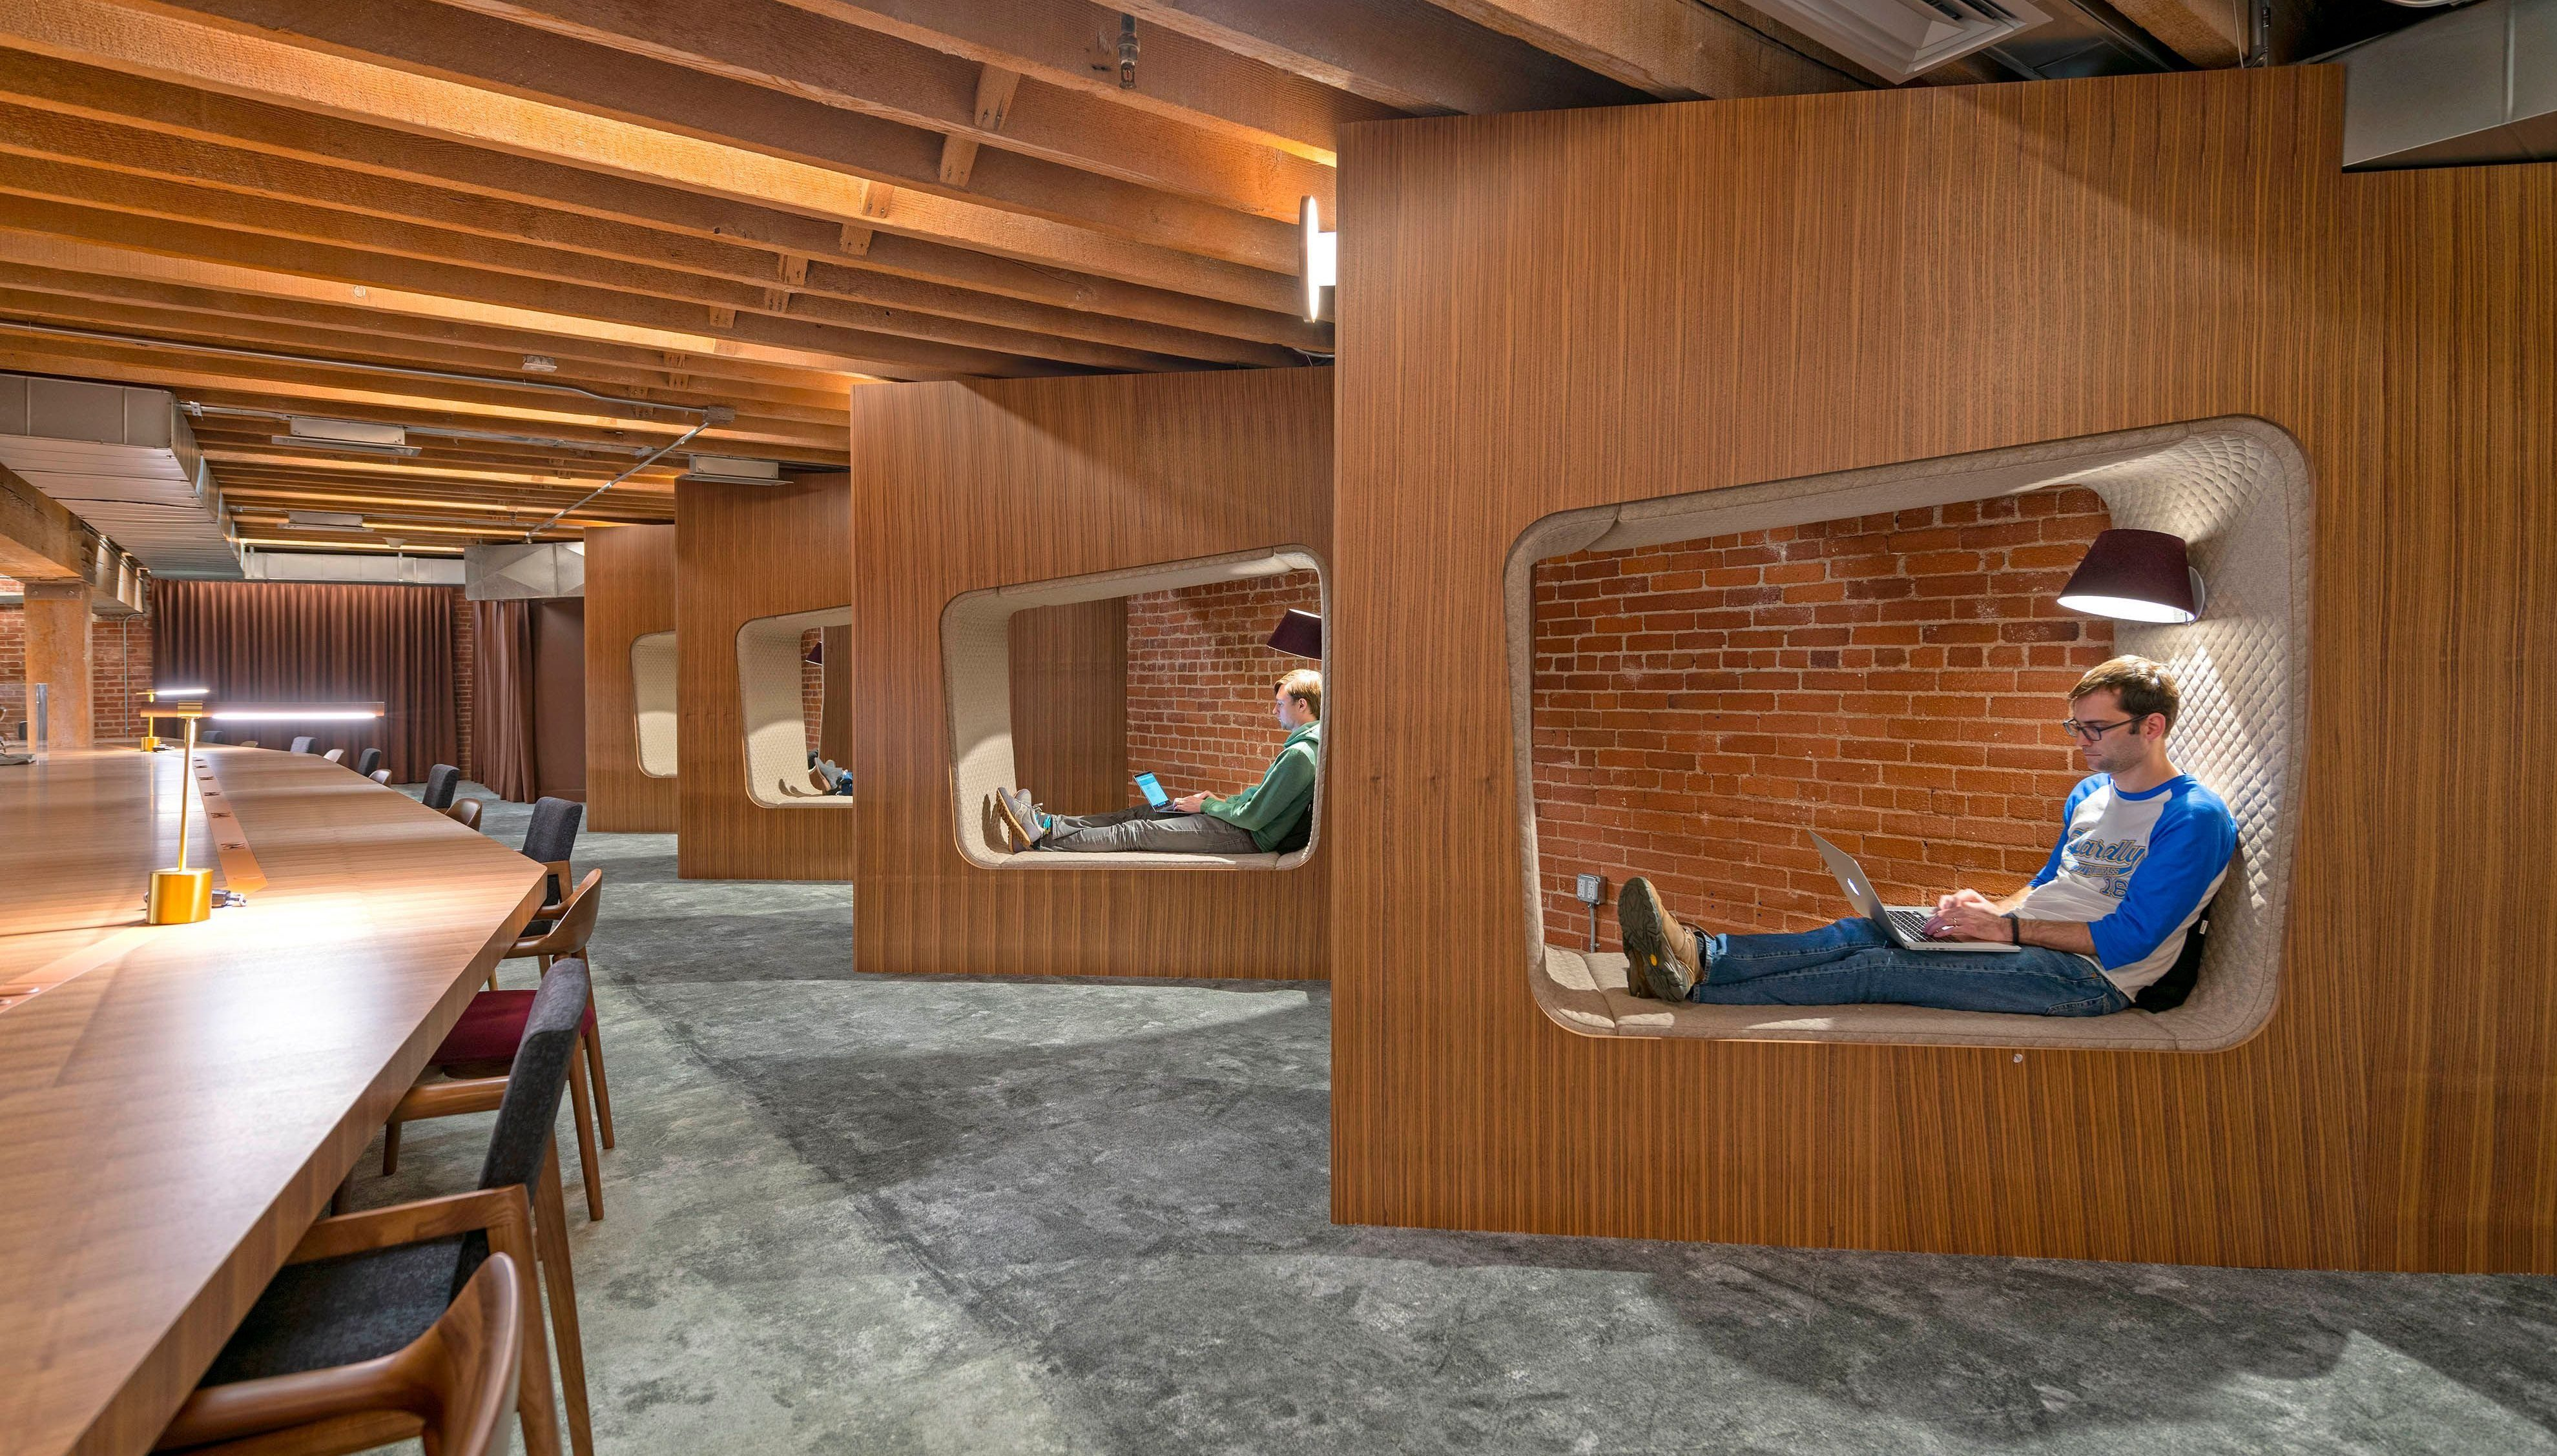 Github S Refurbished San Francisco Headquarters Is